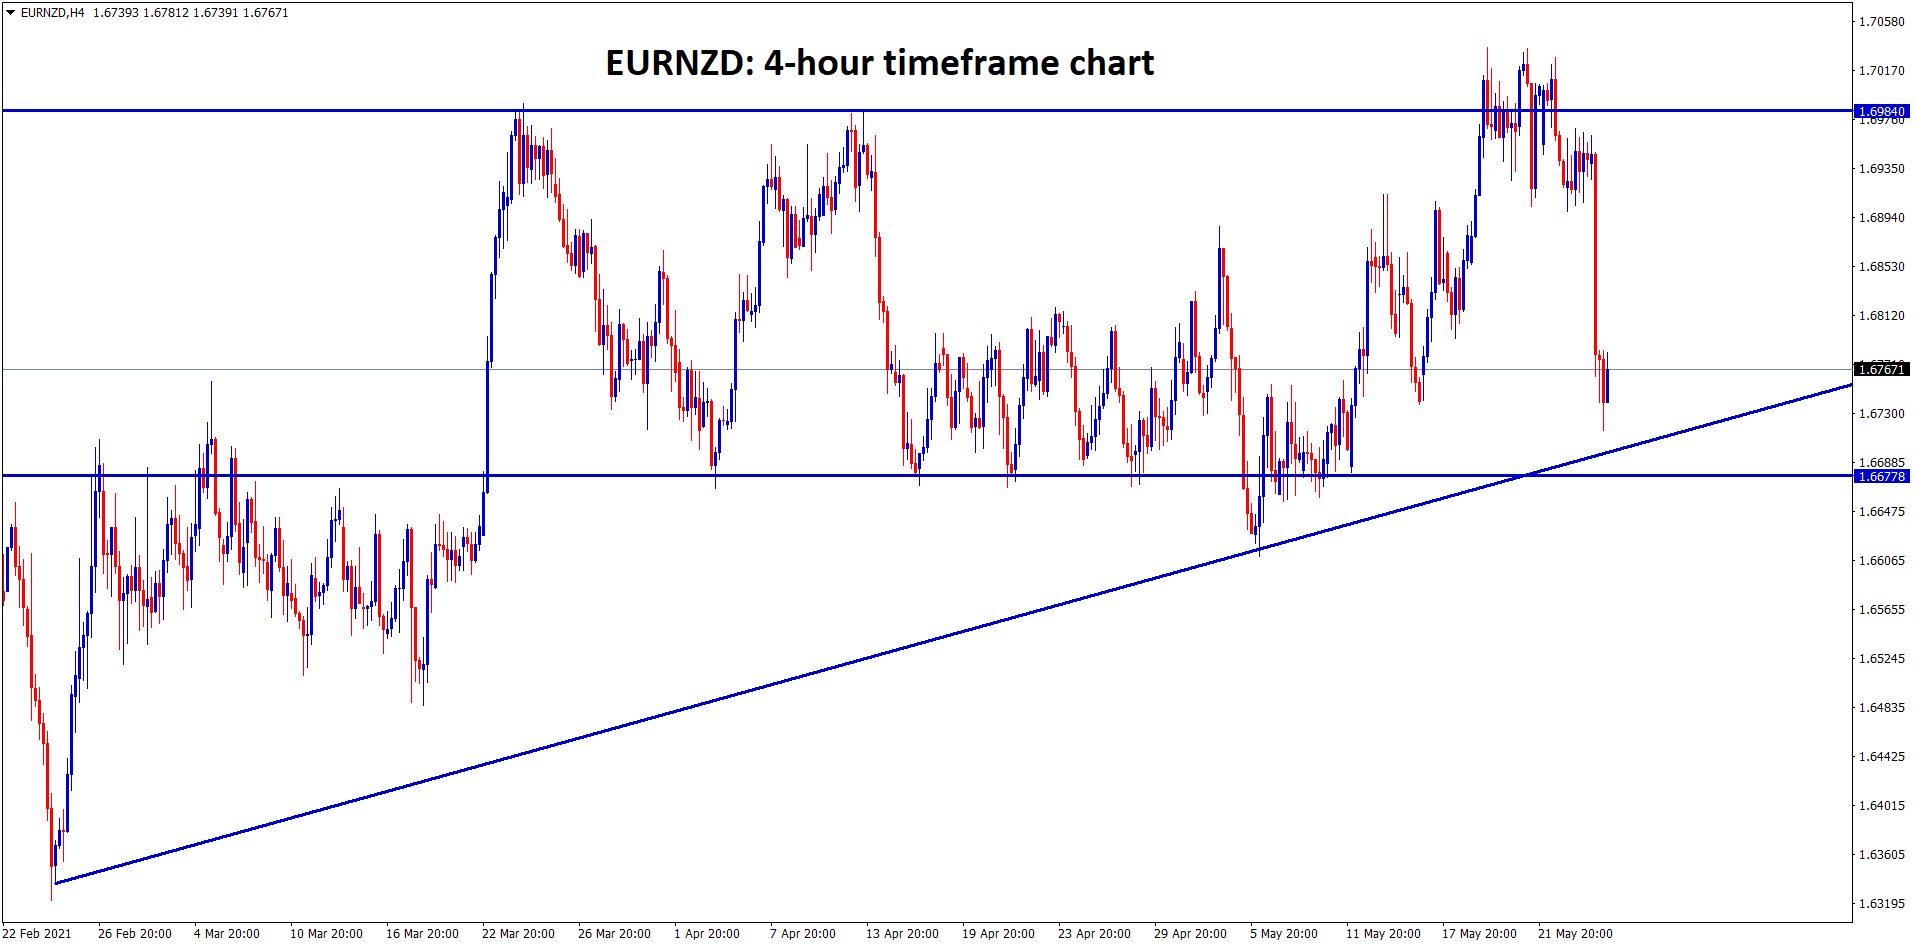 EURNZD going to reach the higher low and the horizontal support zone